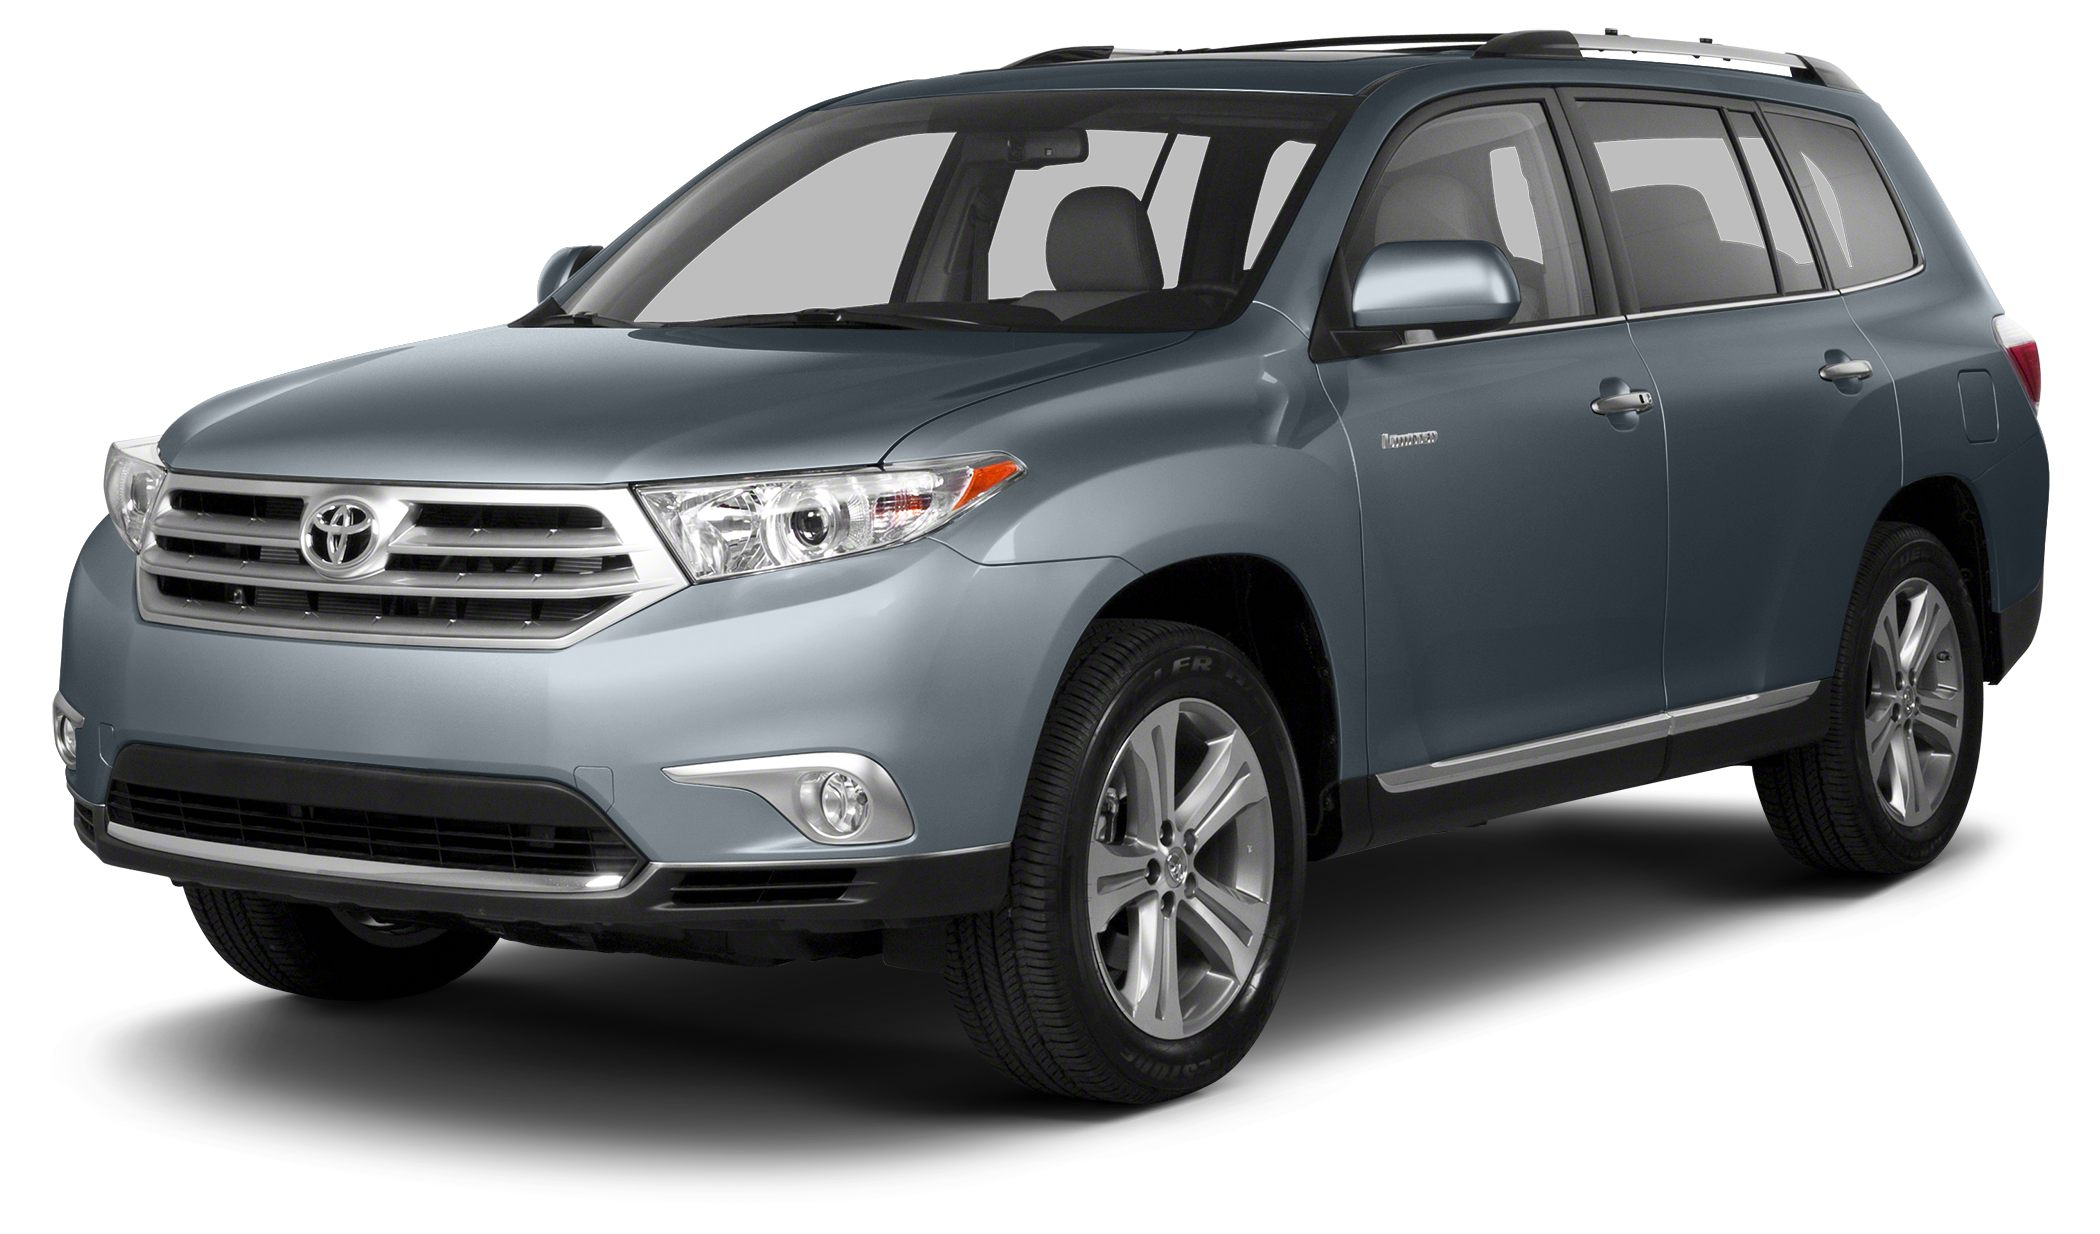 2013 Toyota Highlander SE CARFAX 1-Owner GREAT MILES 38878 SHORELINE BLUE PEARL exterior and SA